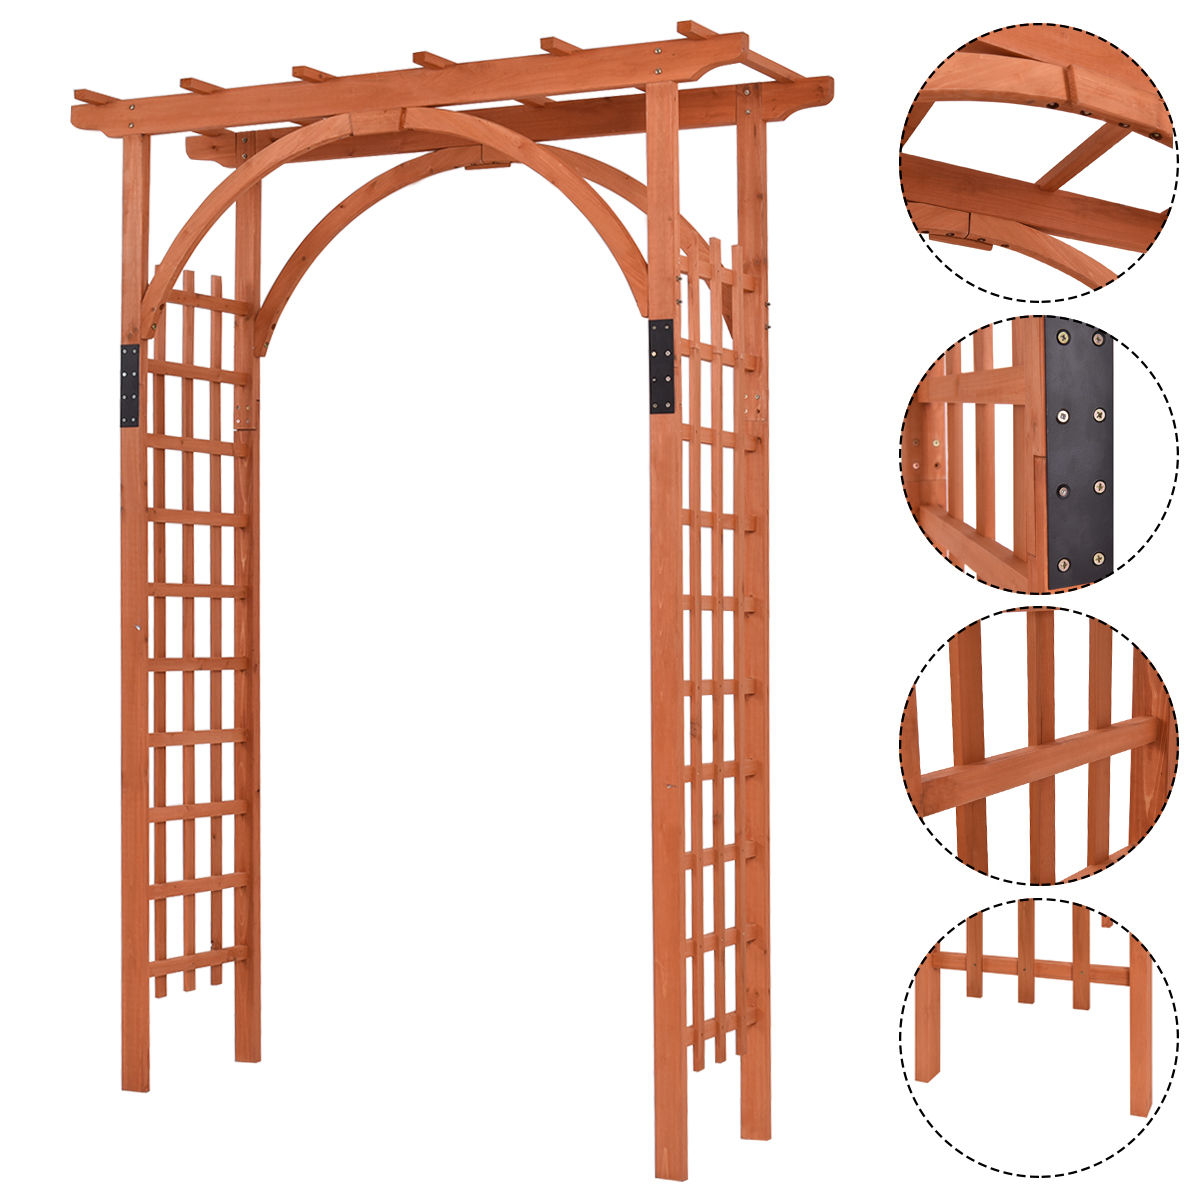 Costway Premium Outdoor Wooden Cedar Arbor Arch Pergola Trellis Wood Garden Yard Lattice by Costway